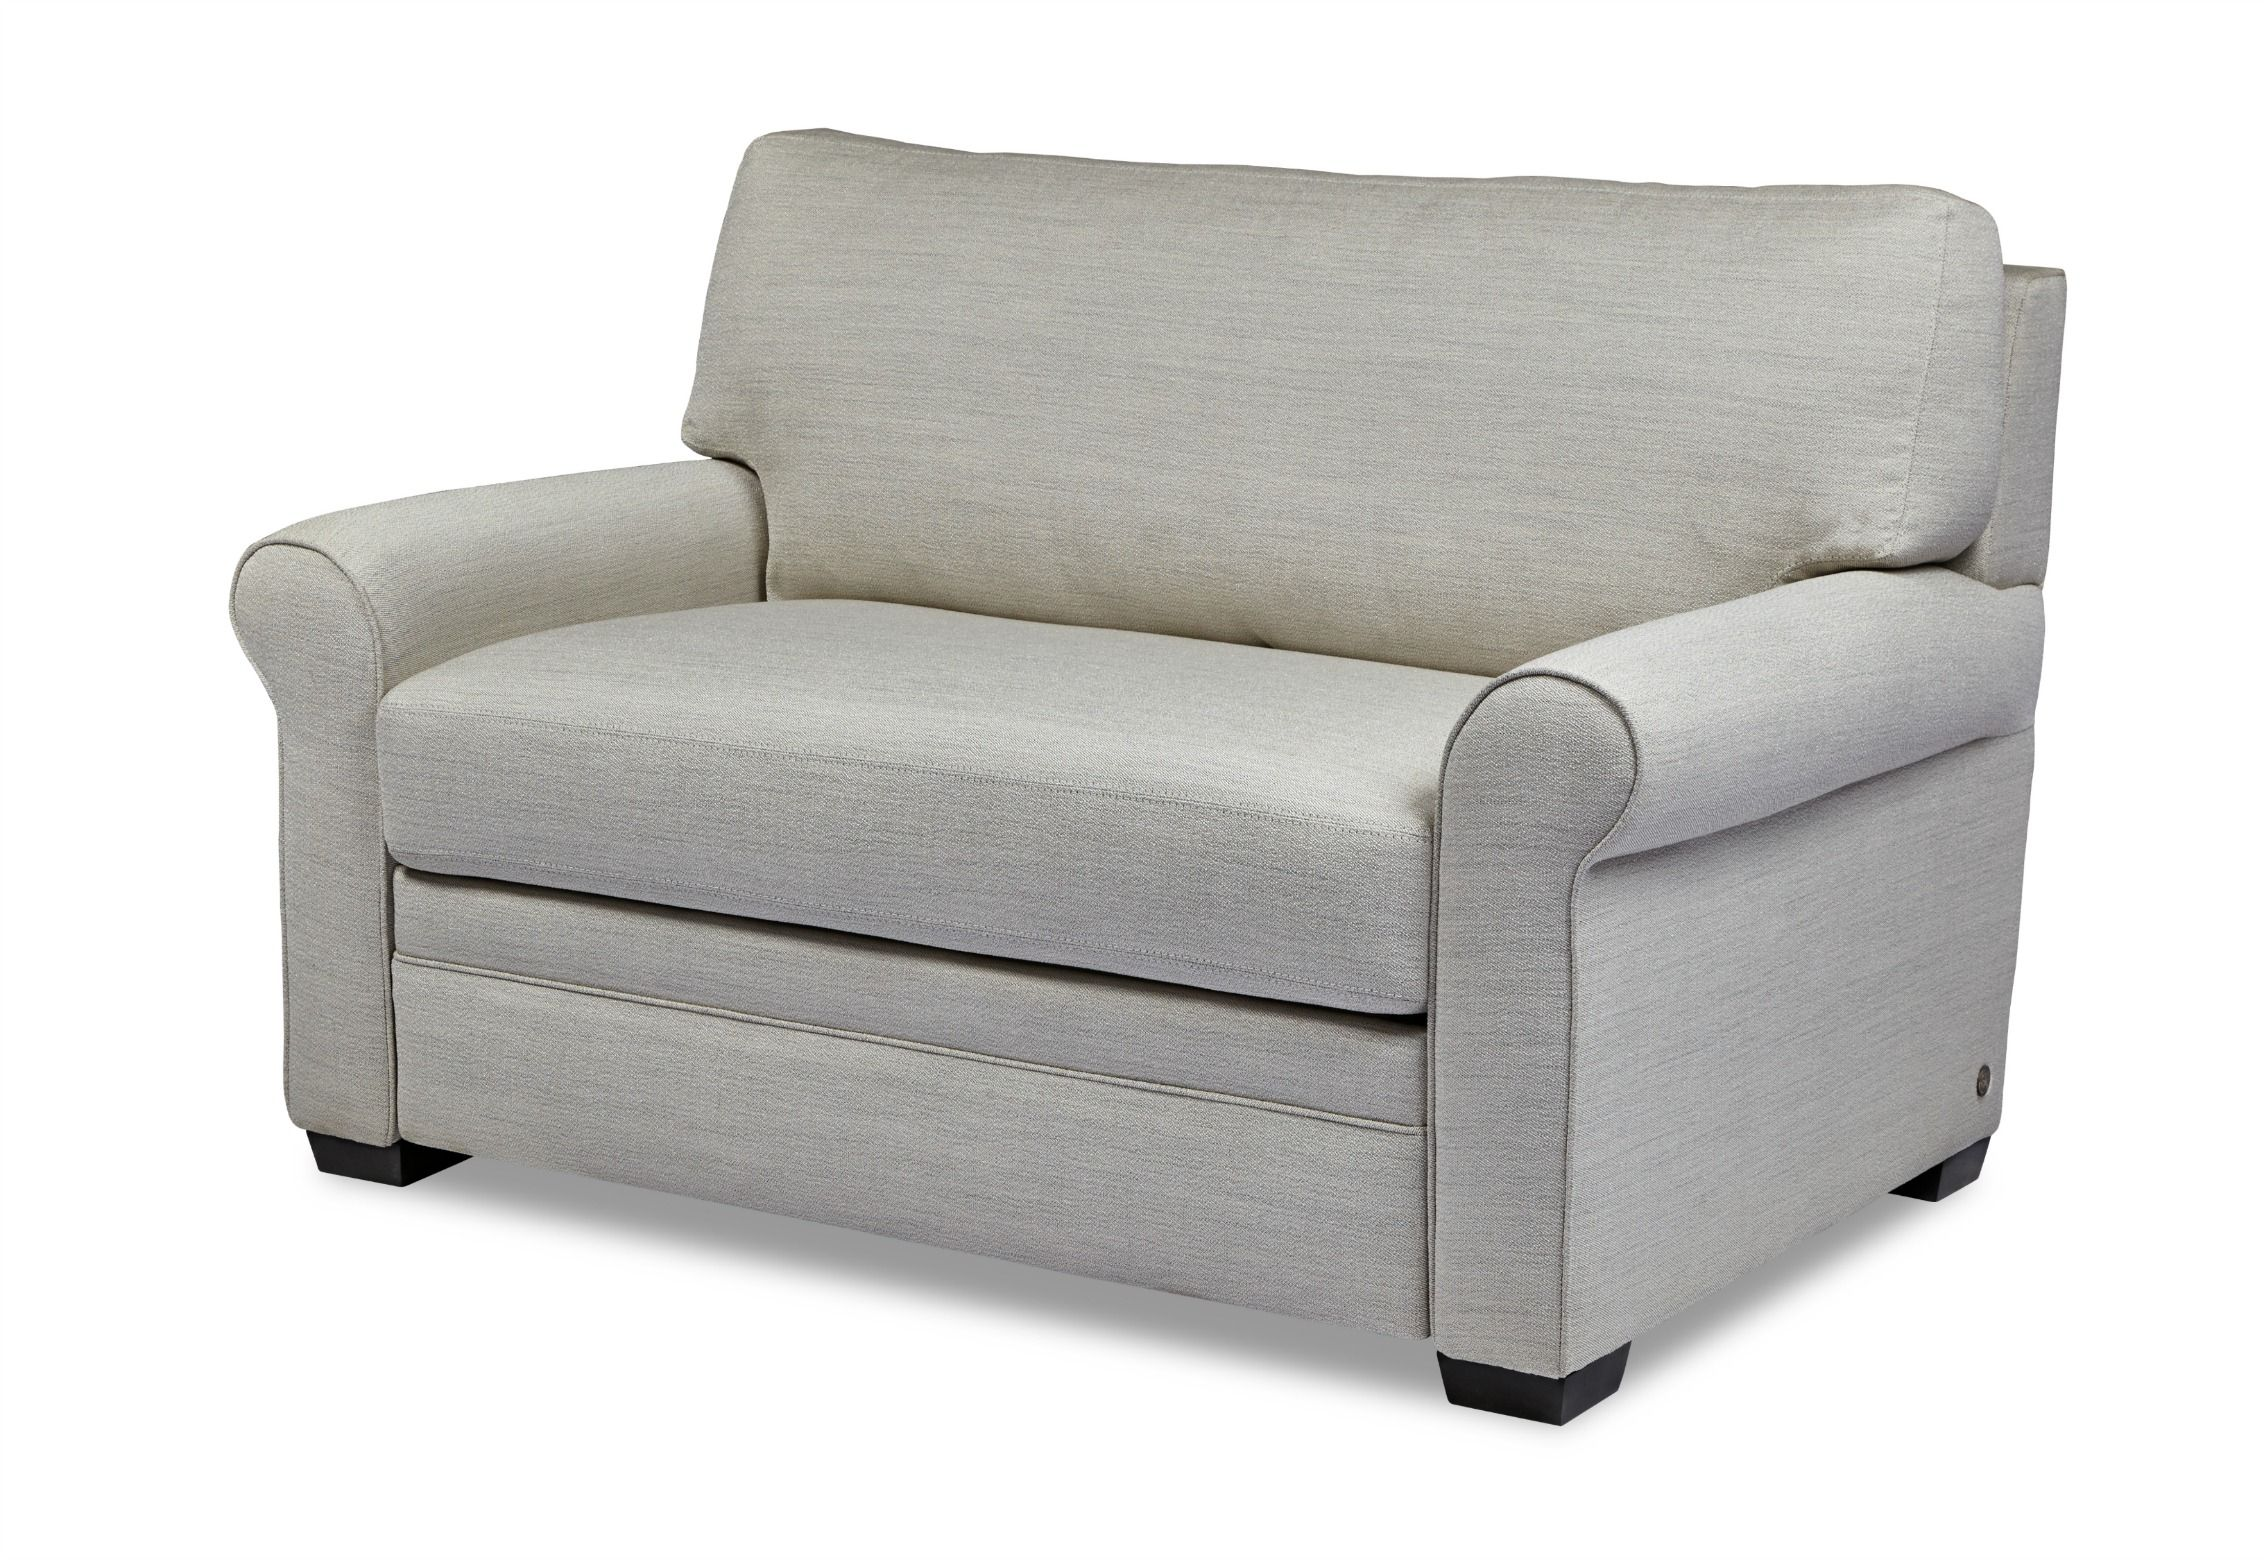 Gina Twin Comfort Sleeper® Sofa by American Leather is